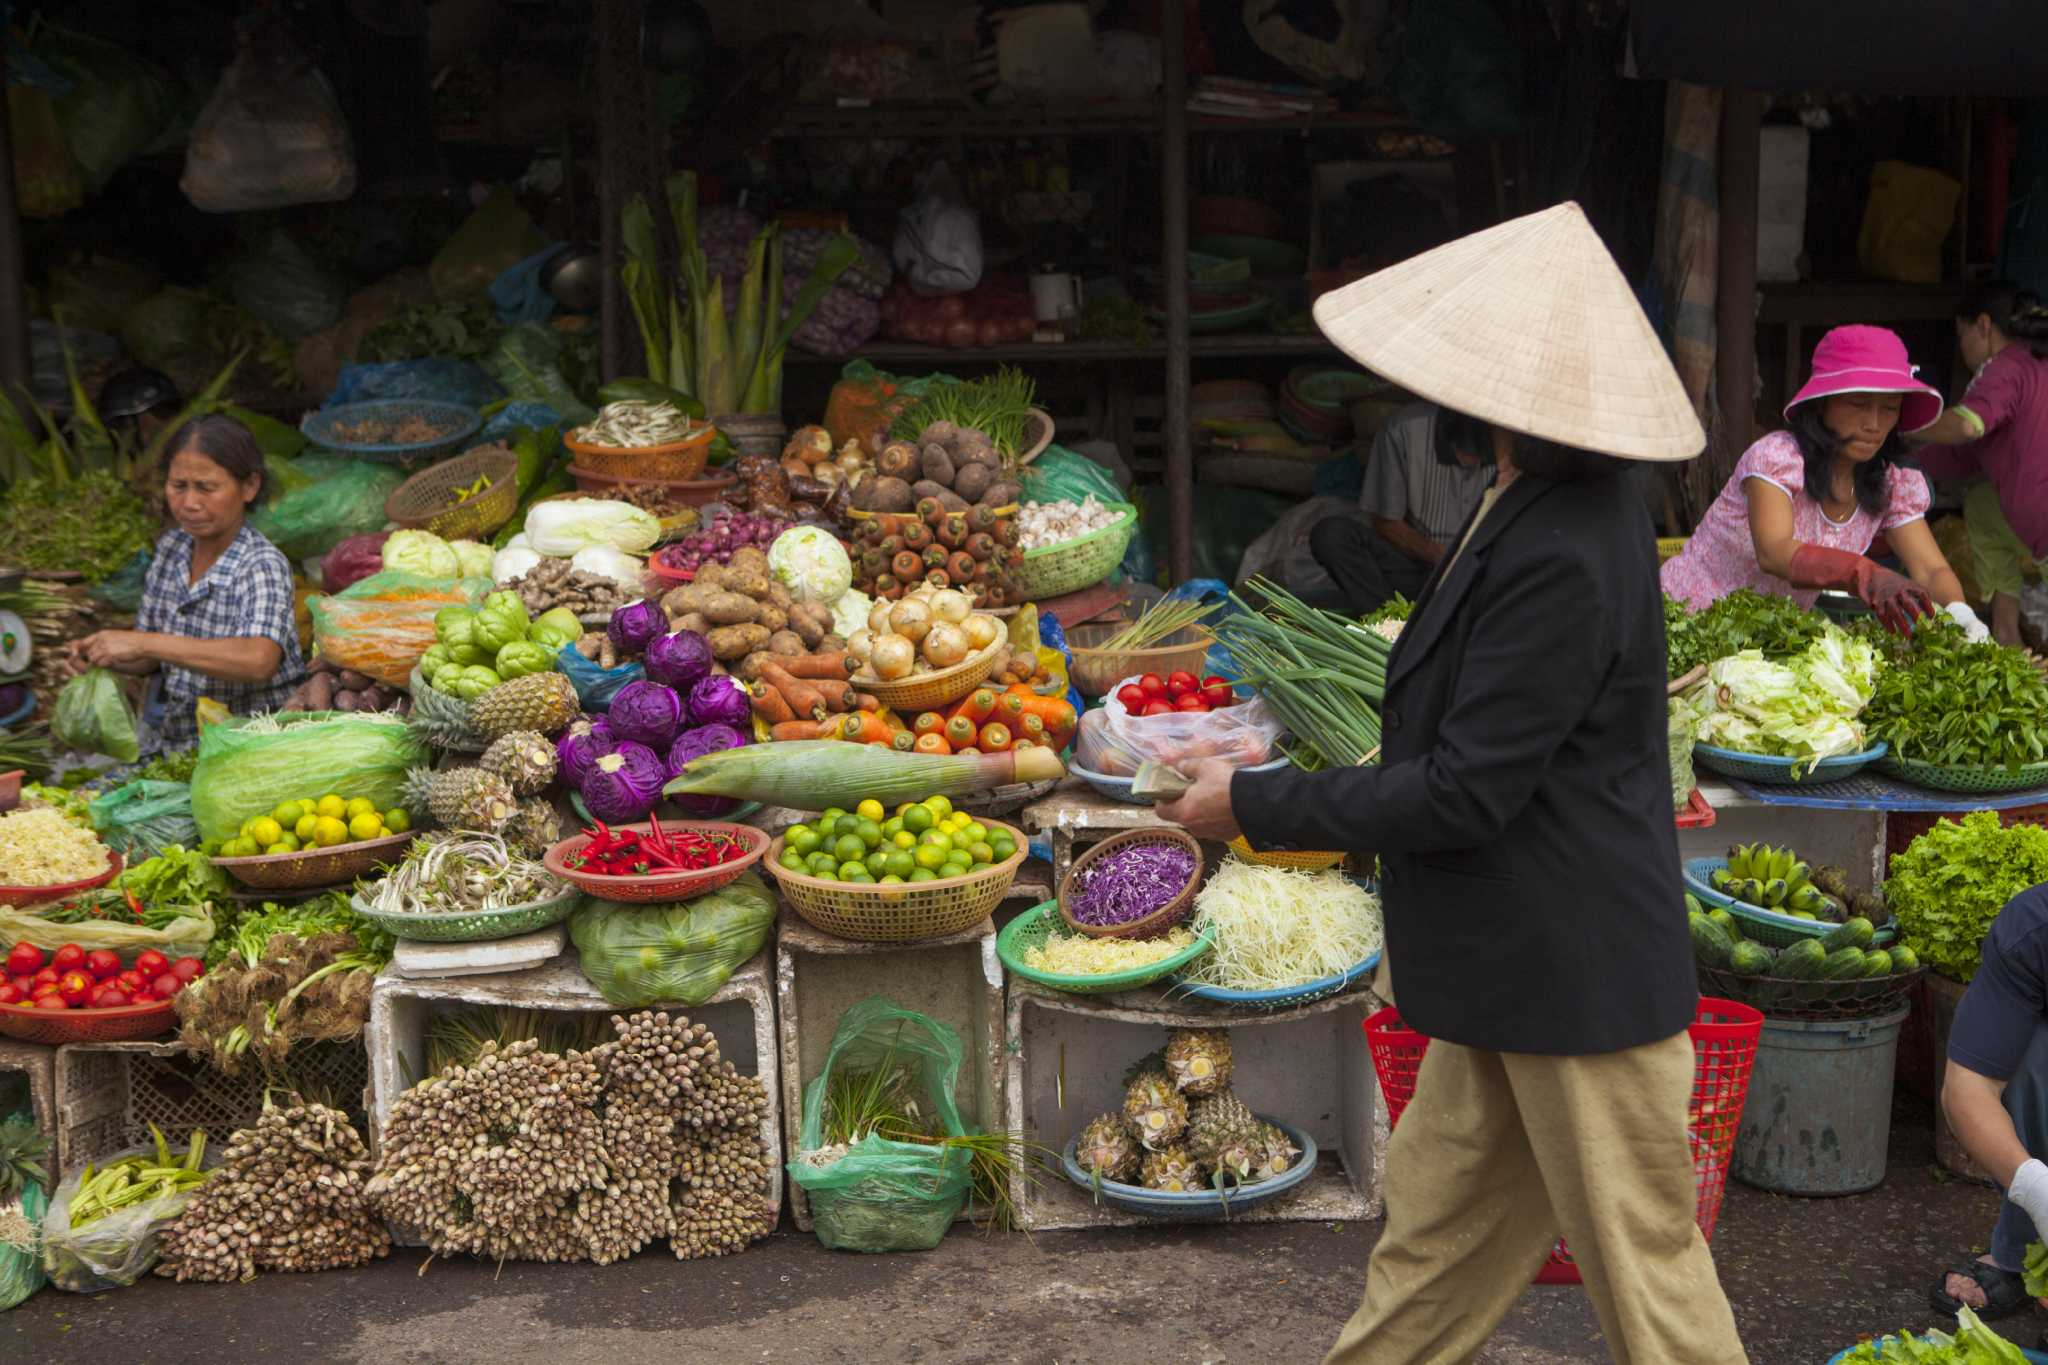 A trip to Vietnam: Despite a history of conflict, Hue's culture is ancient and welcoming - and delicious